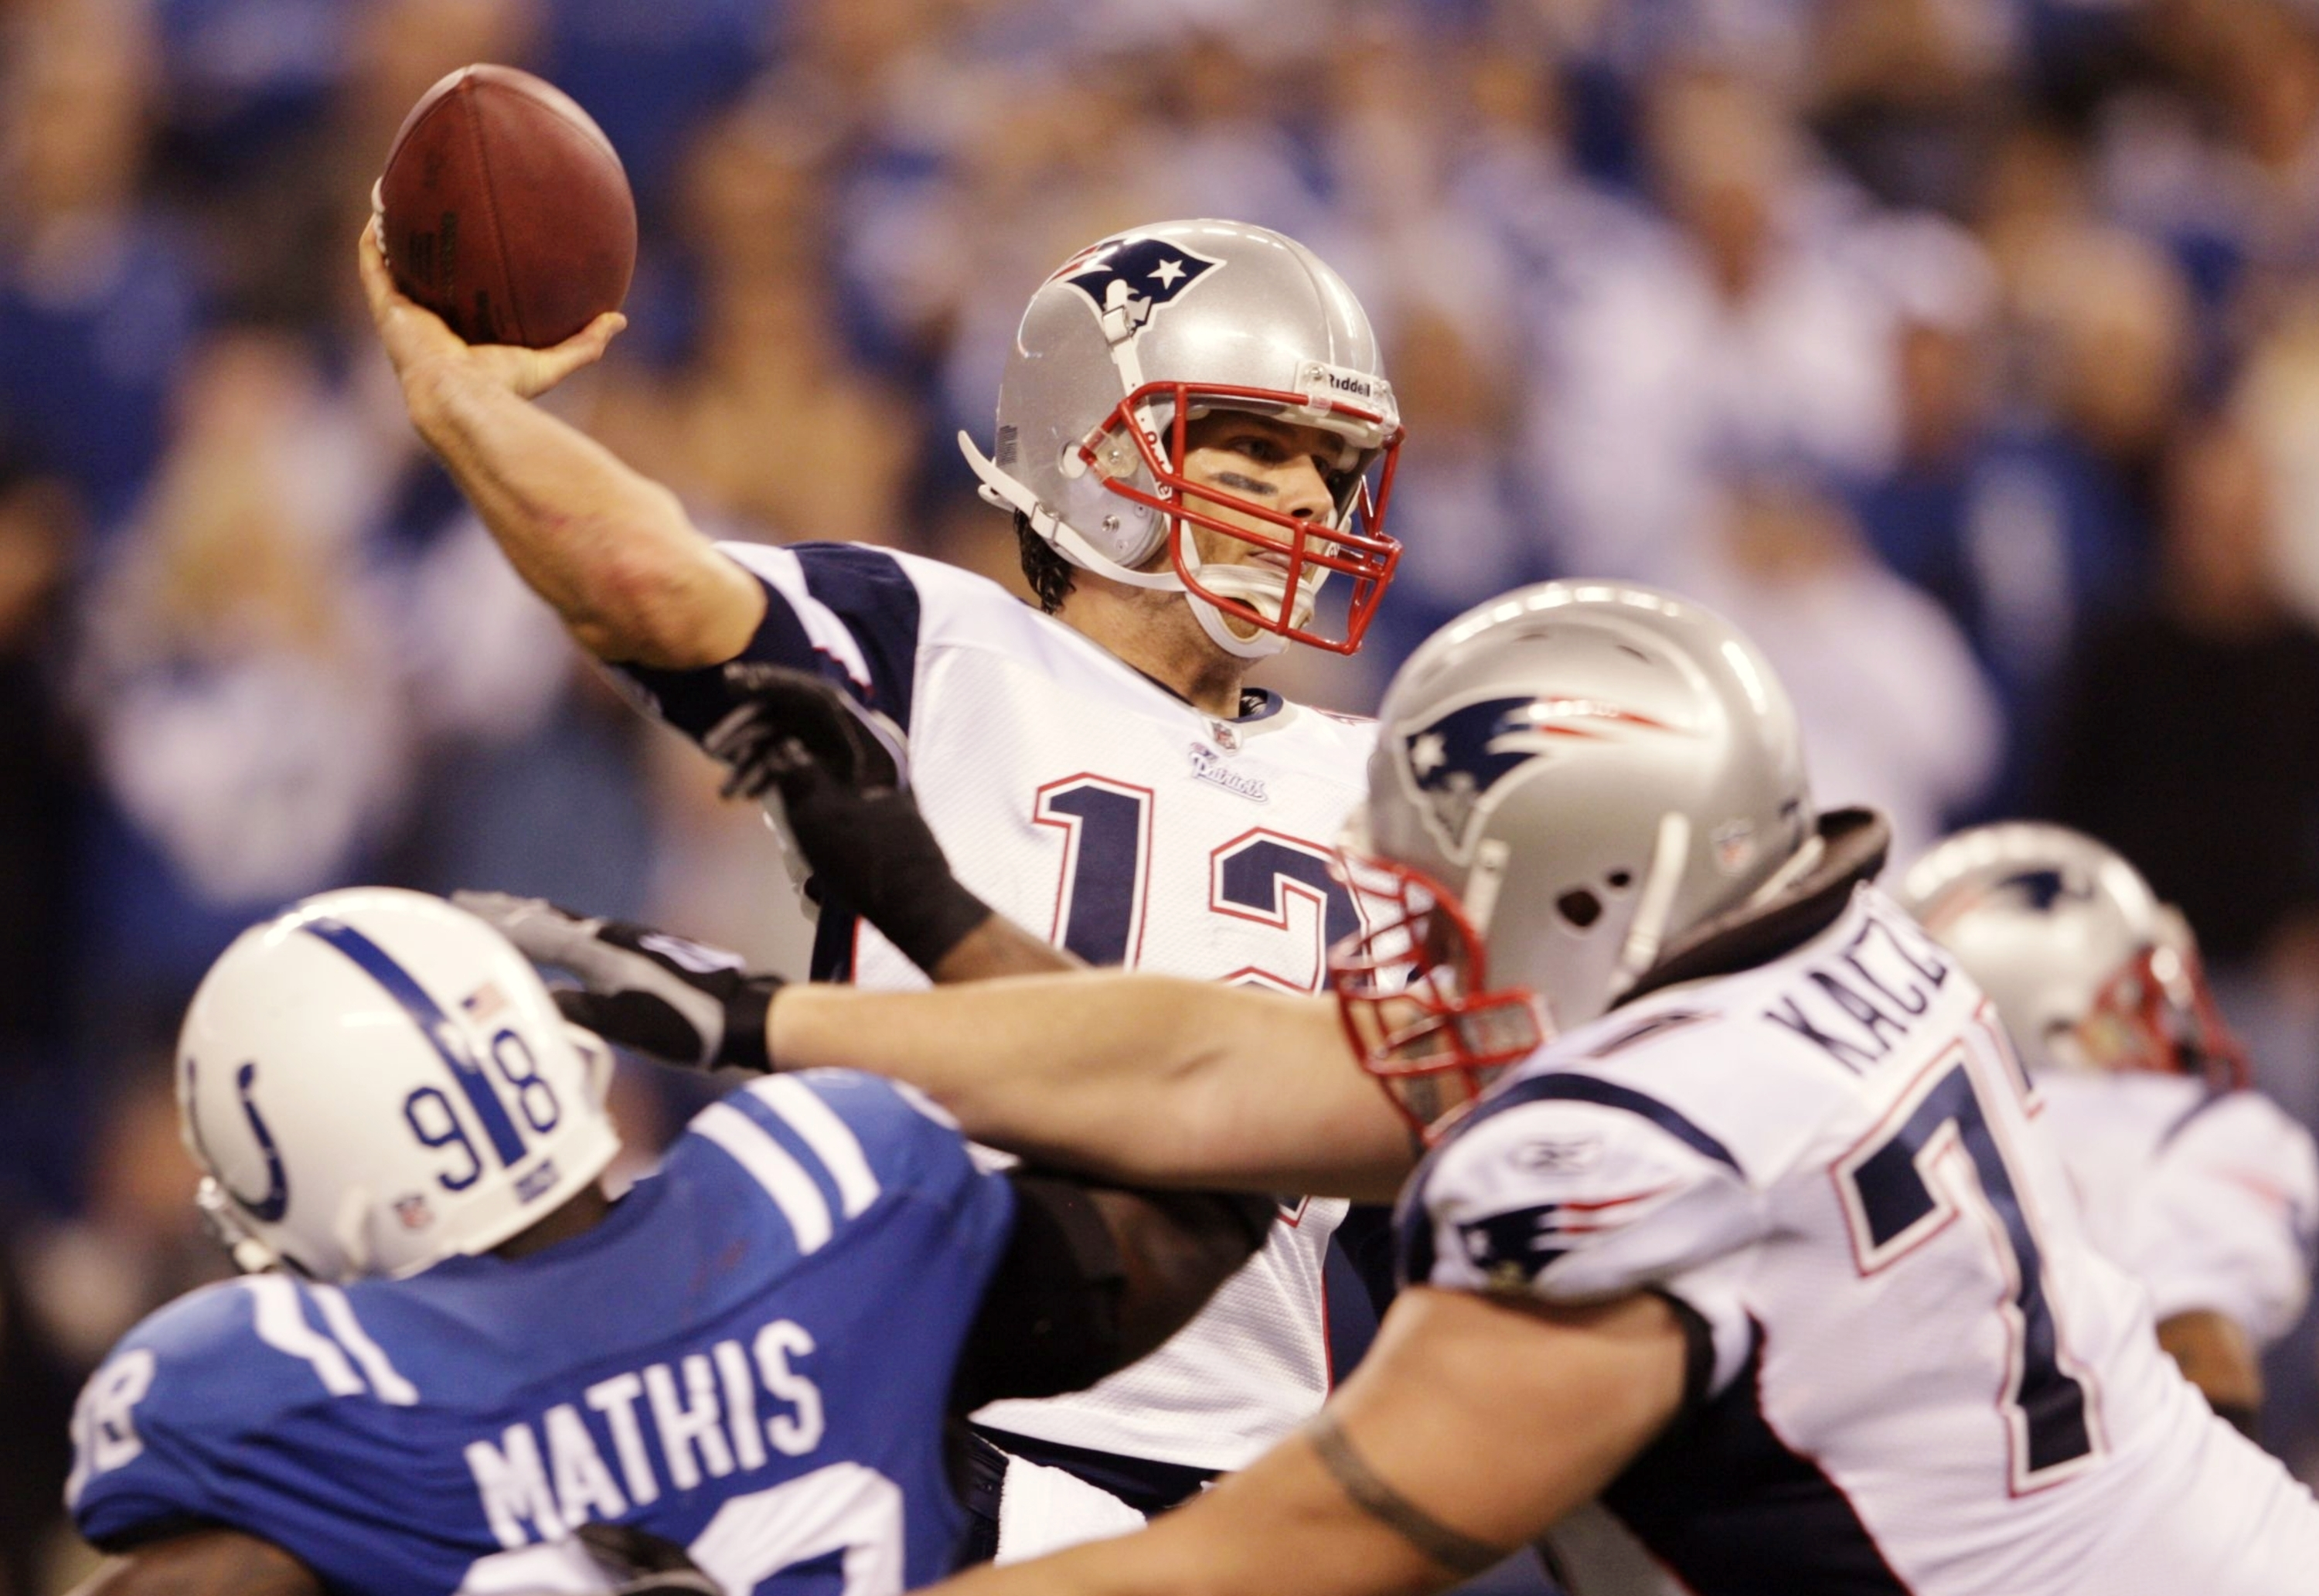 INDIANAPOLIS - NOVEMBER 15: Quarterback Tom Brady #12 of the New England Patriots looks to pass the ball in the second quarter of the game against the Indianapolis Colts at Lucas Oil Stadium on November 15, 2009 in Indianapolis, Indiana. (Photo by Andy Ly